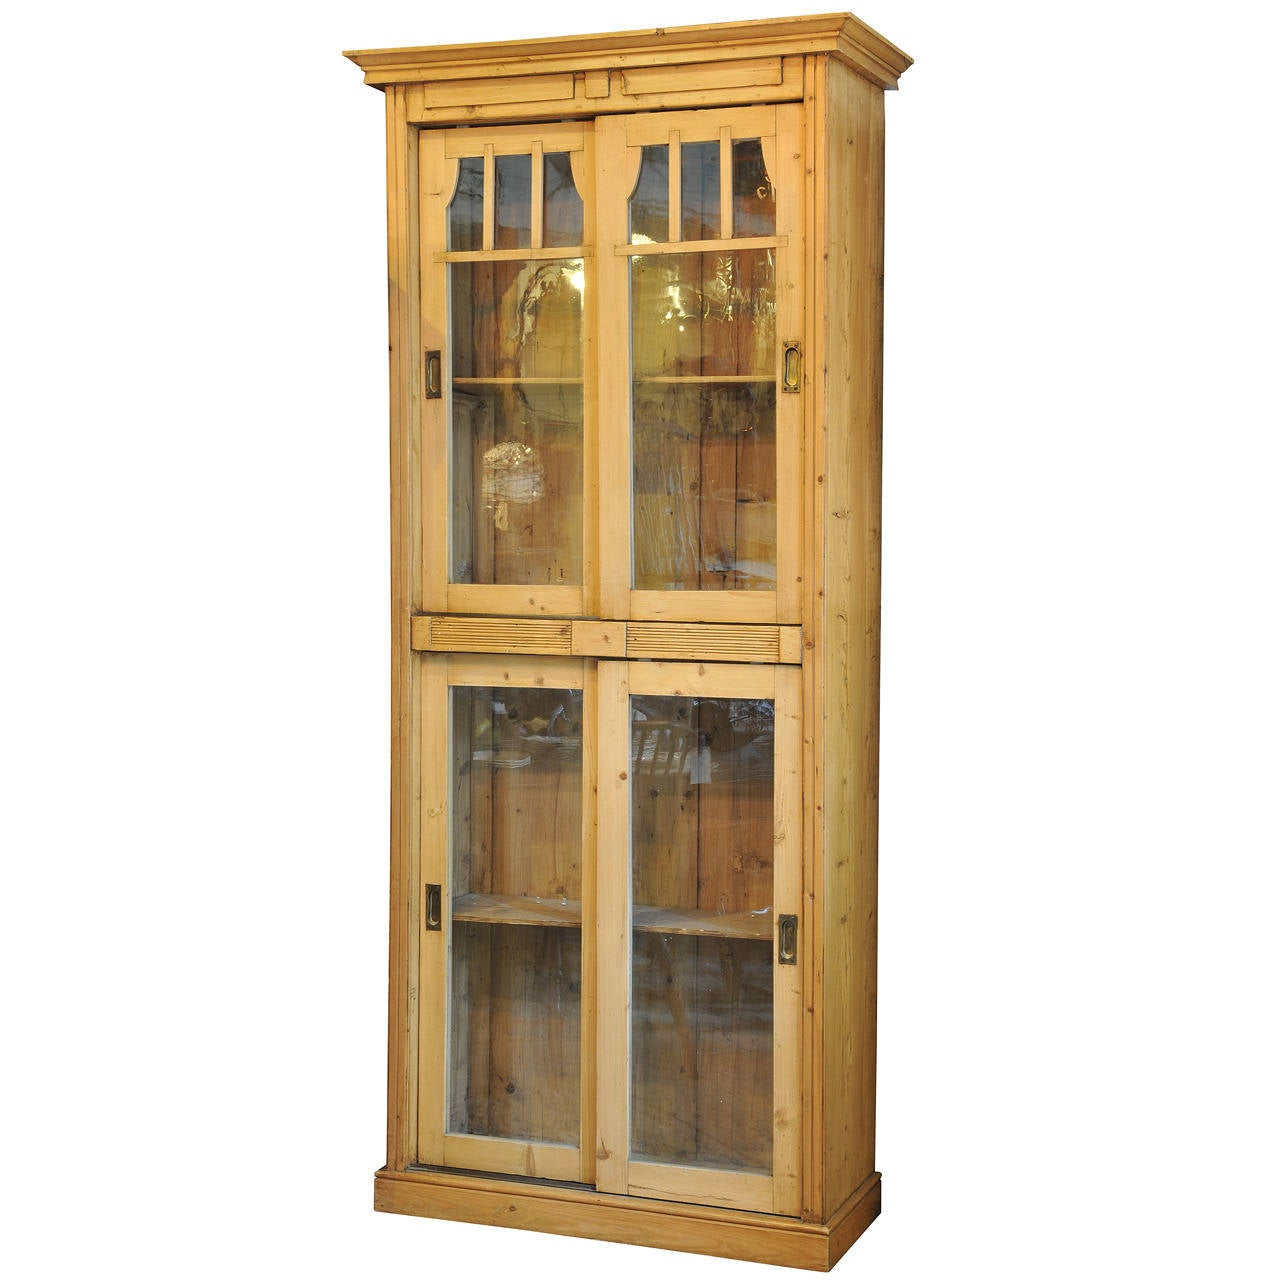 Tall Antique Pine Pantry Cupboard 1 - Tall Antique Pine Pantry Cupboard For Sale At 1stdibs